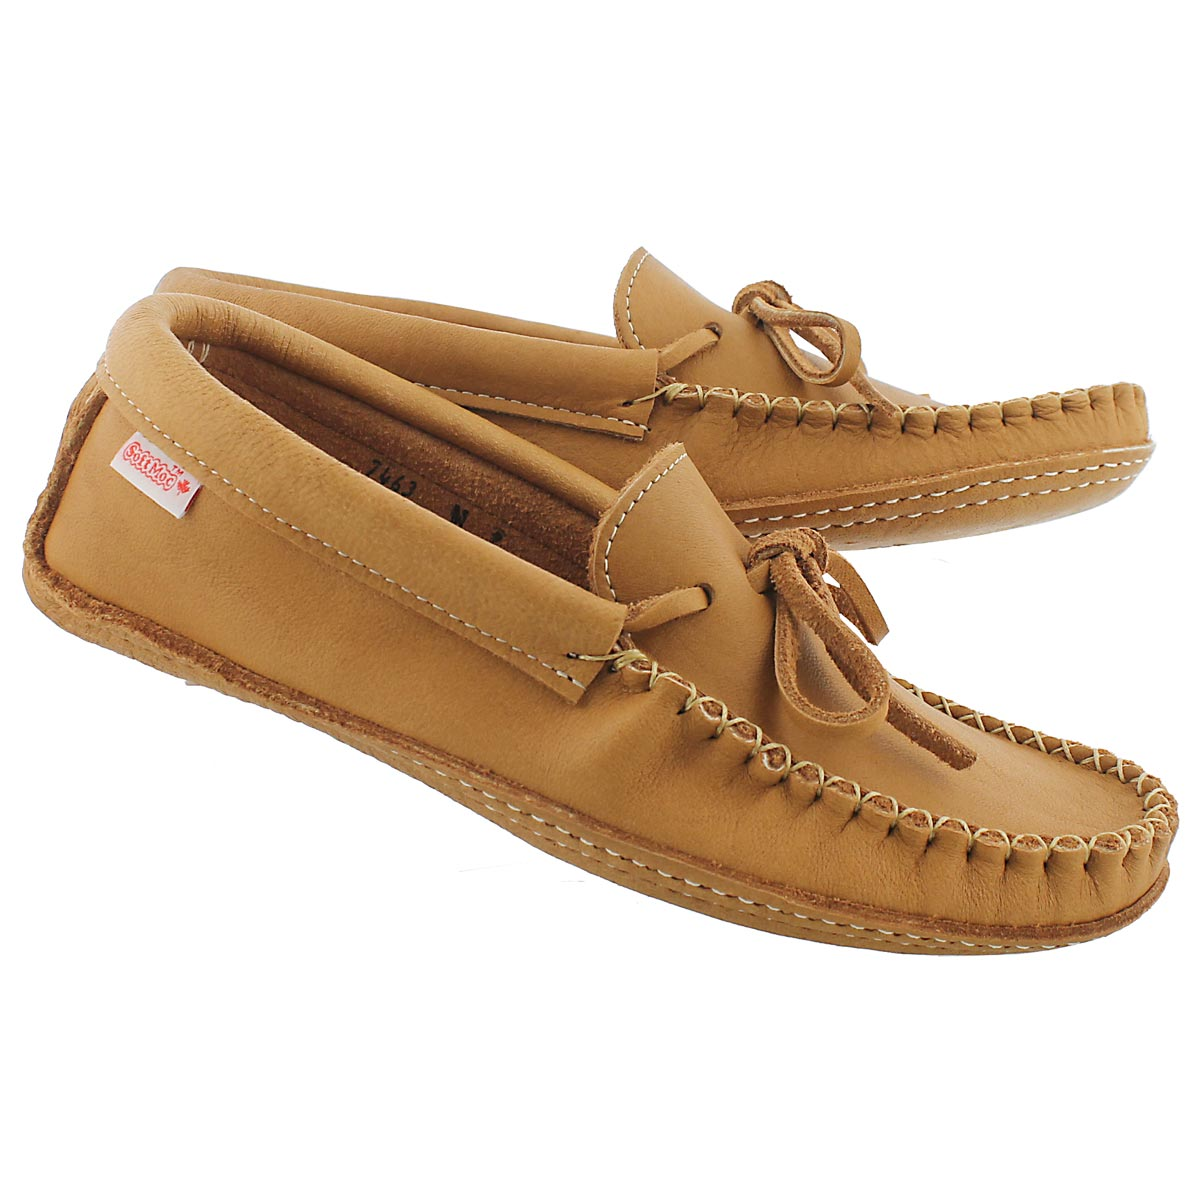 Mns cork double sole lined moccasin